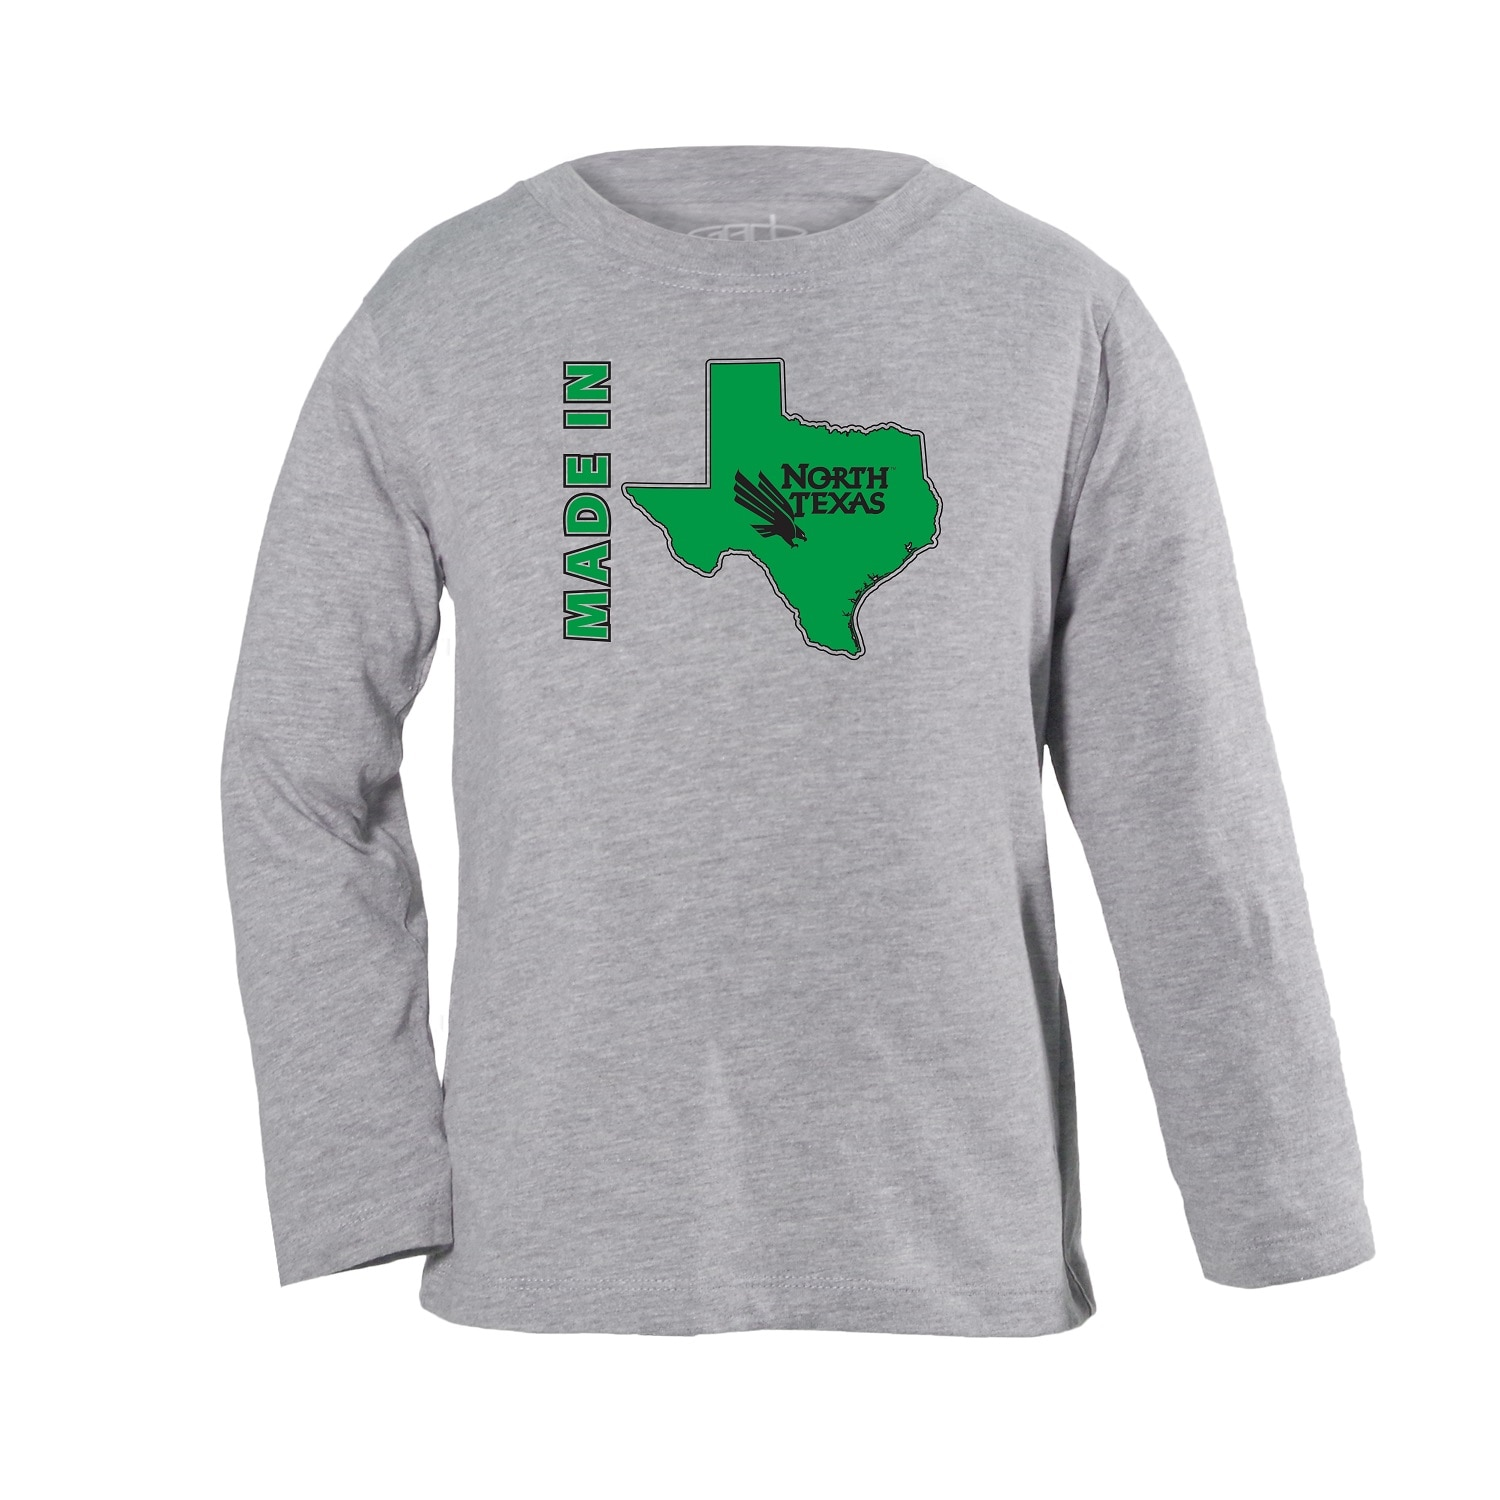 University of North Texas Garb Toddler Lane Long Sleeve T-Shirt